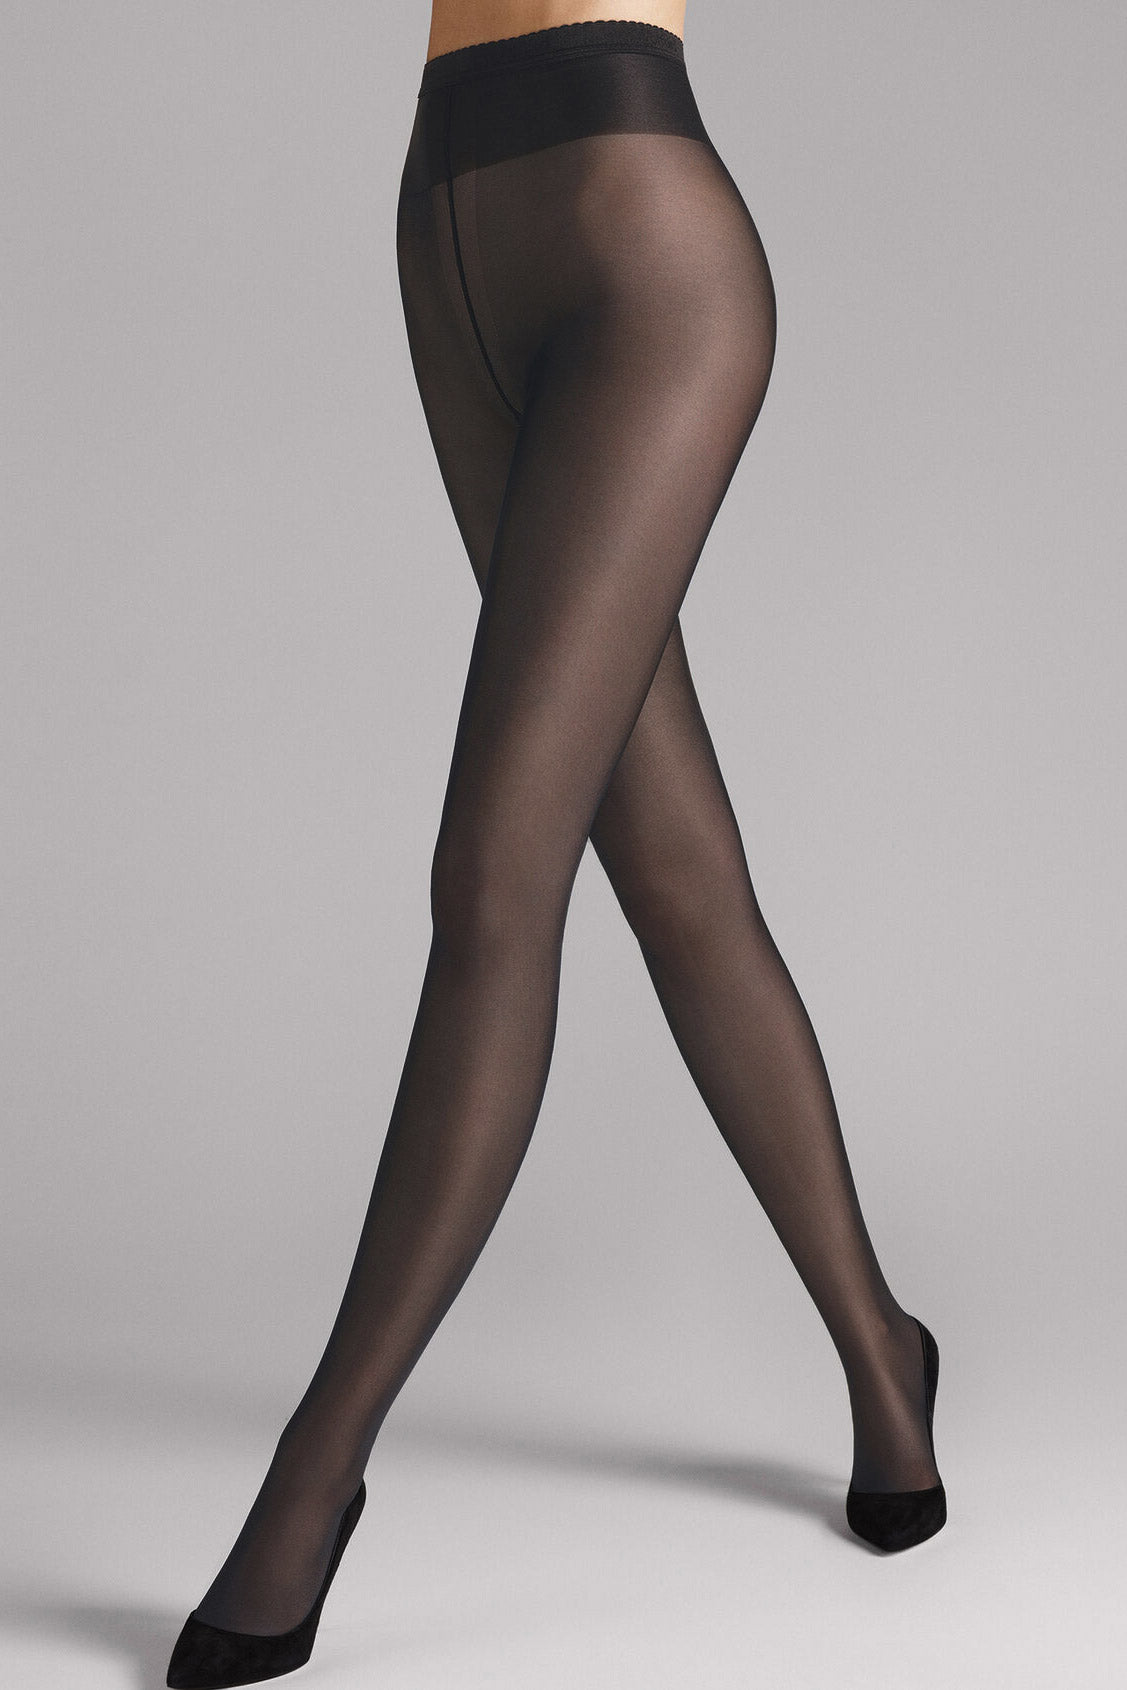 Neon 40 Tights in Black